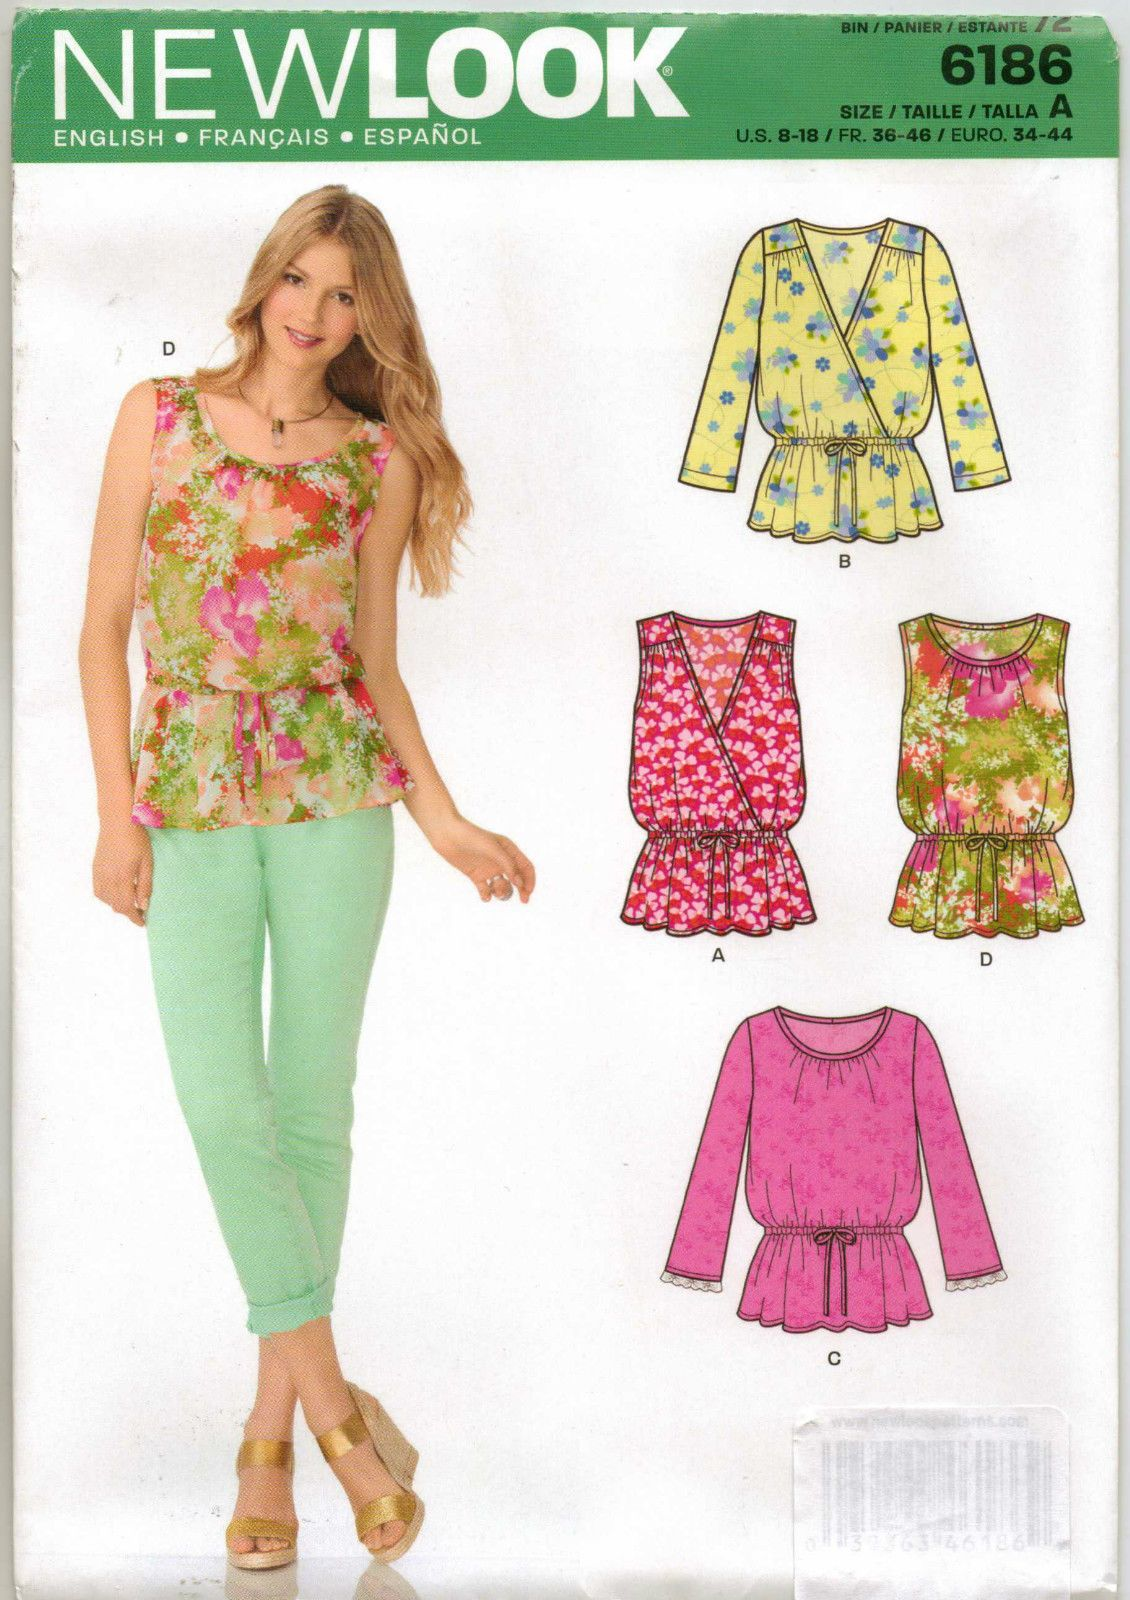 d4520b90 From UK Sewing Pattern Peplum Blouse Top 8-18 #6186 | Clothing ...